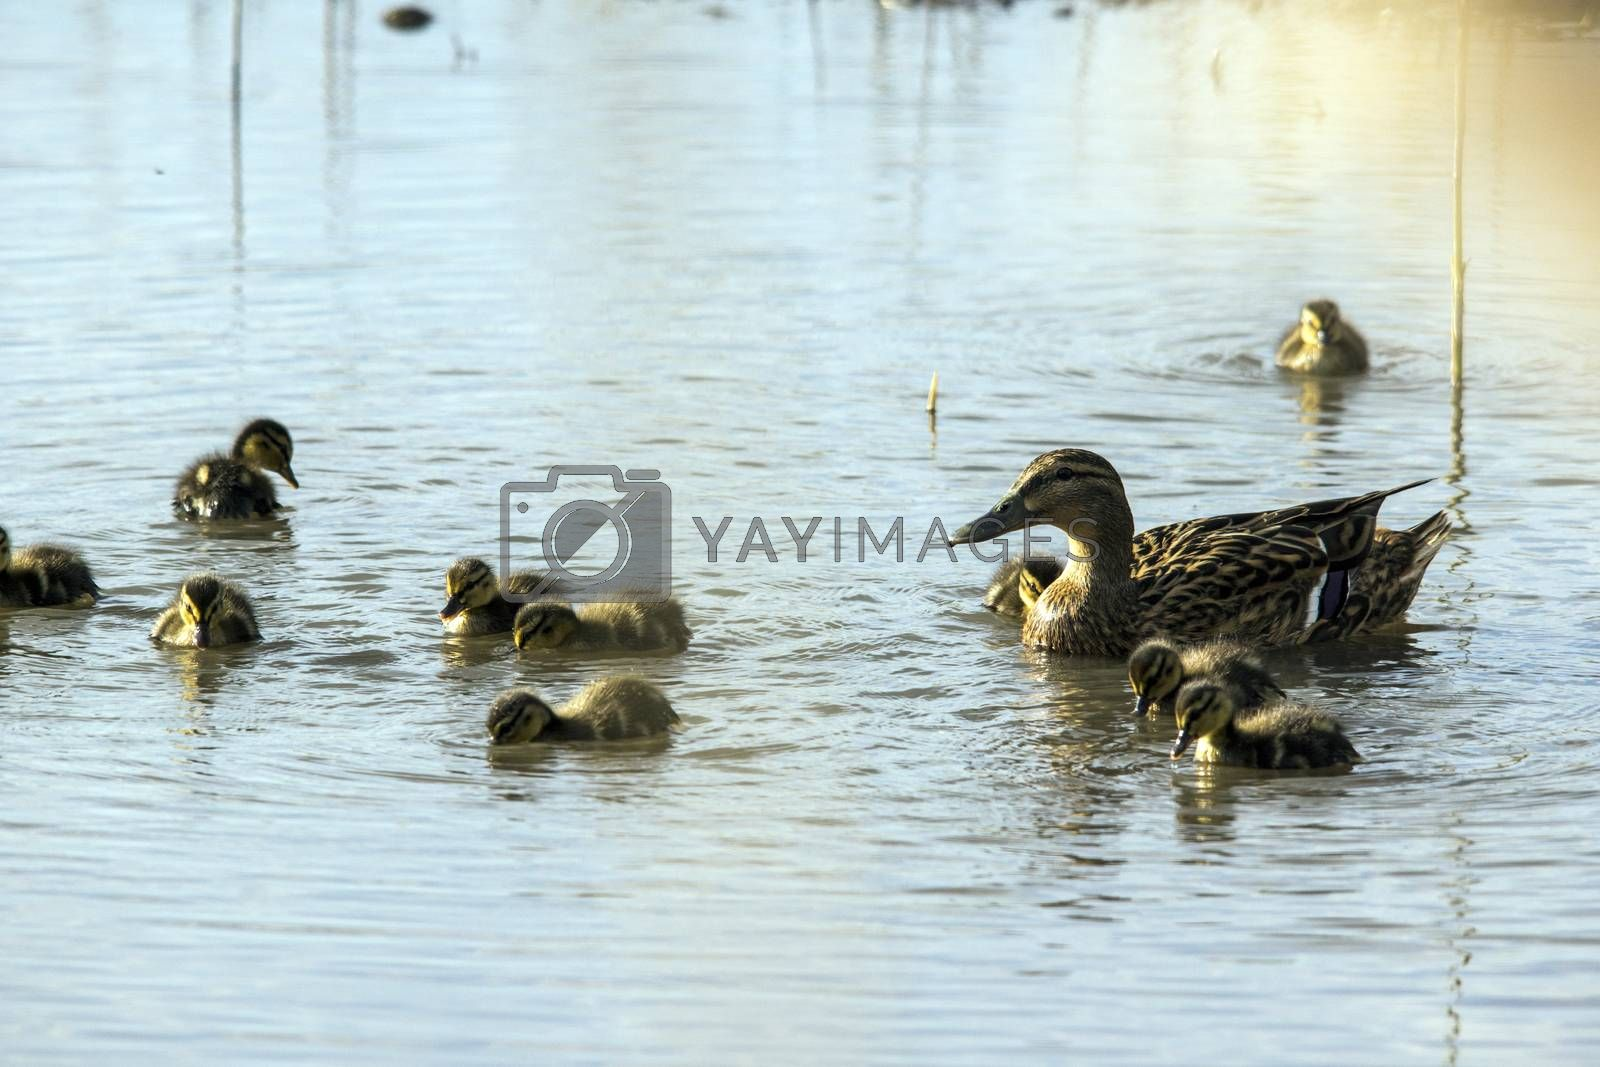 Wild duck (Anas platyrhynchos) family is swimming in the lake water.